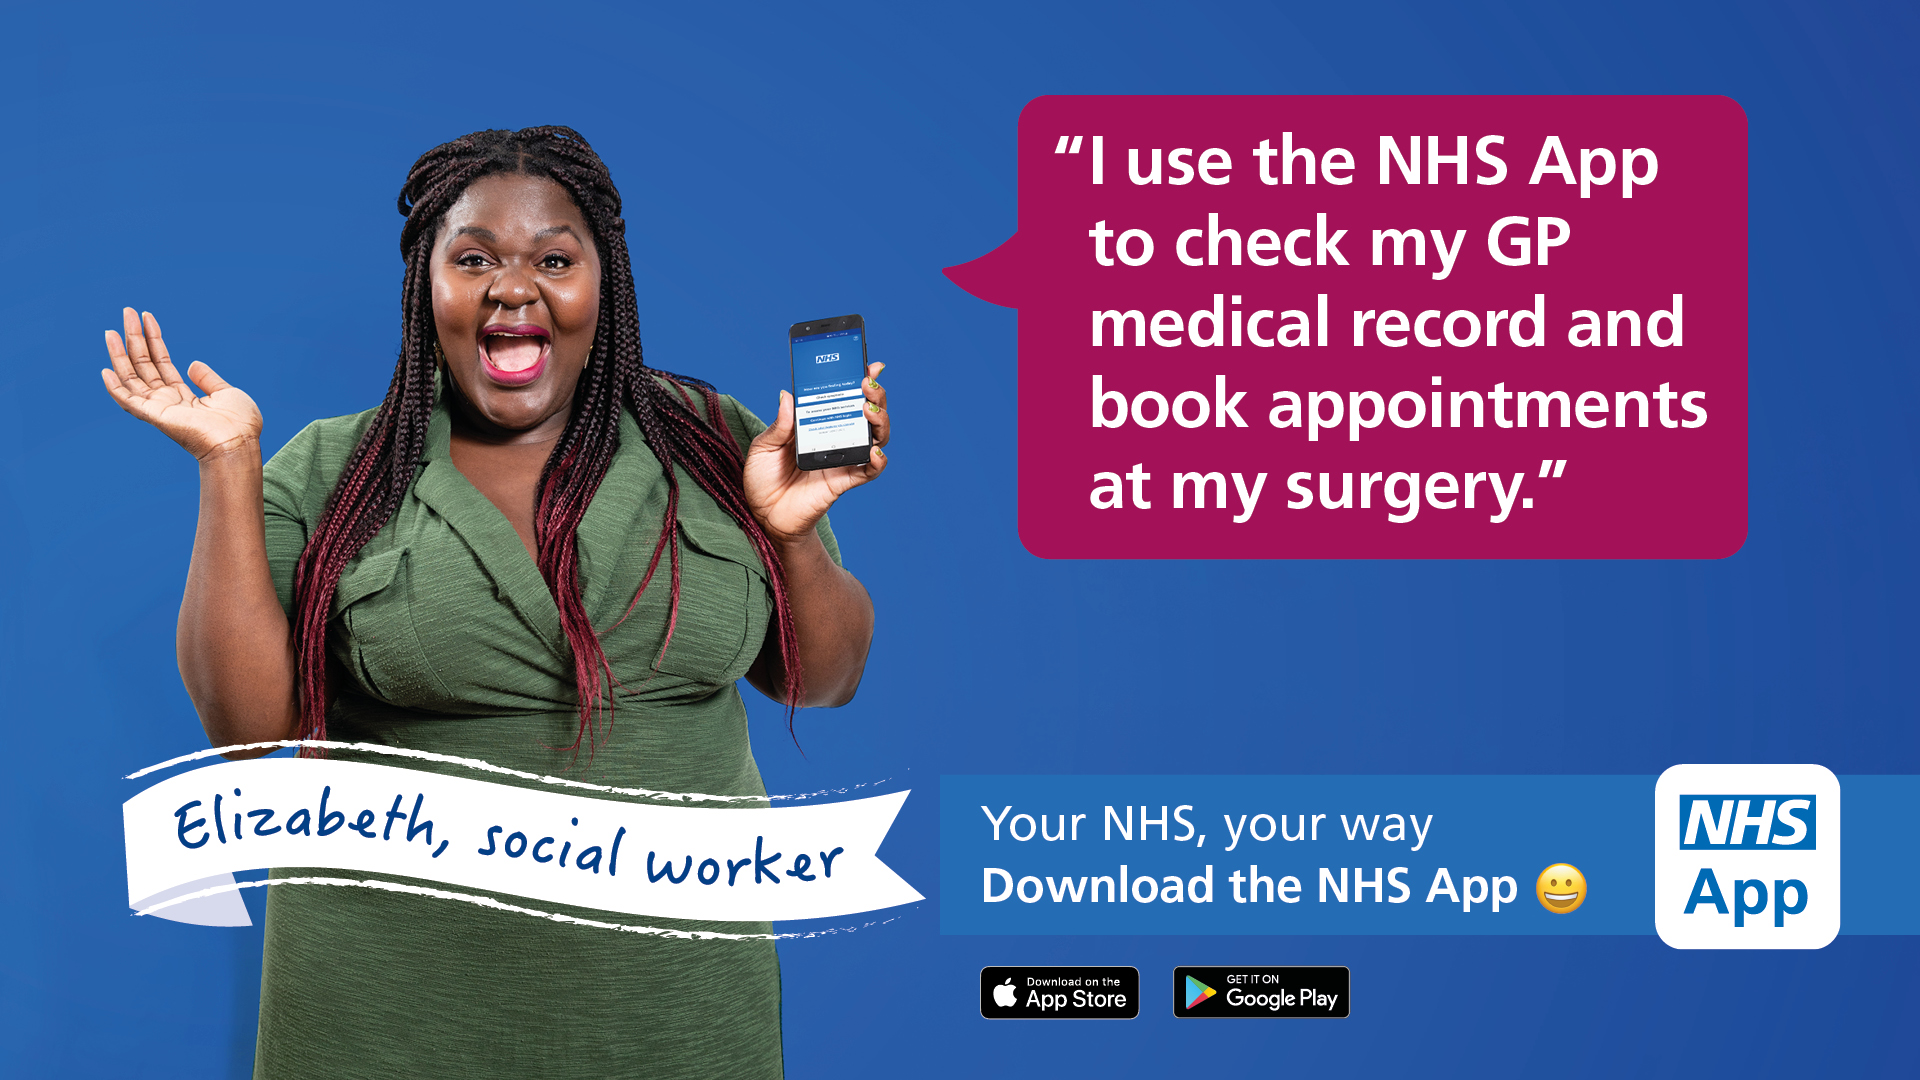 NHS app campaign image of social worker